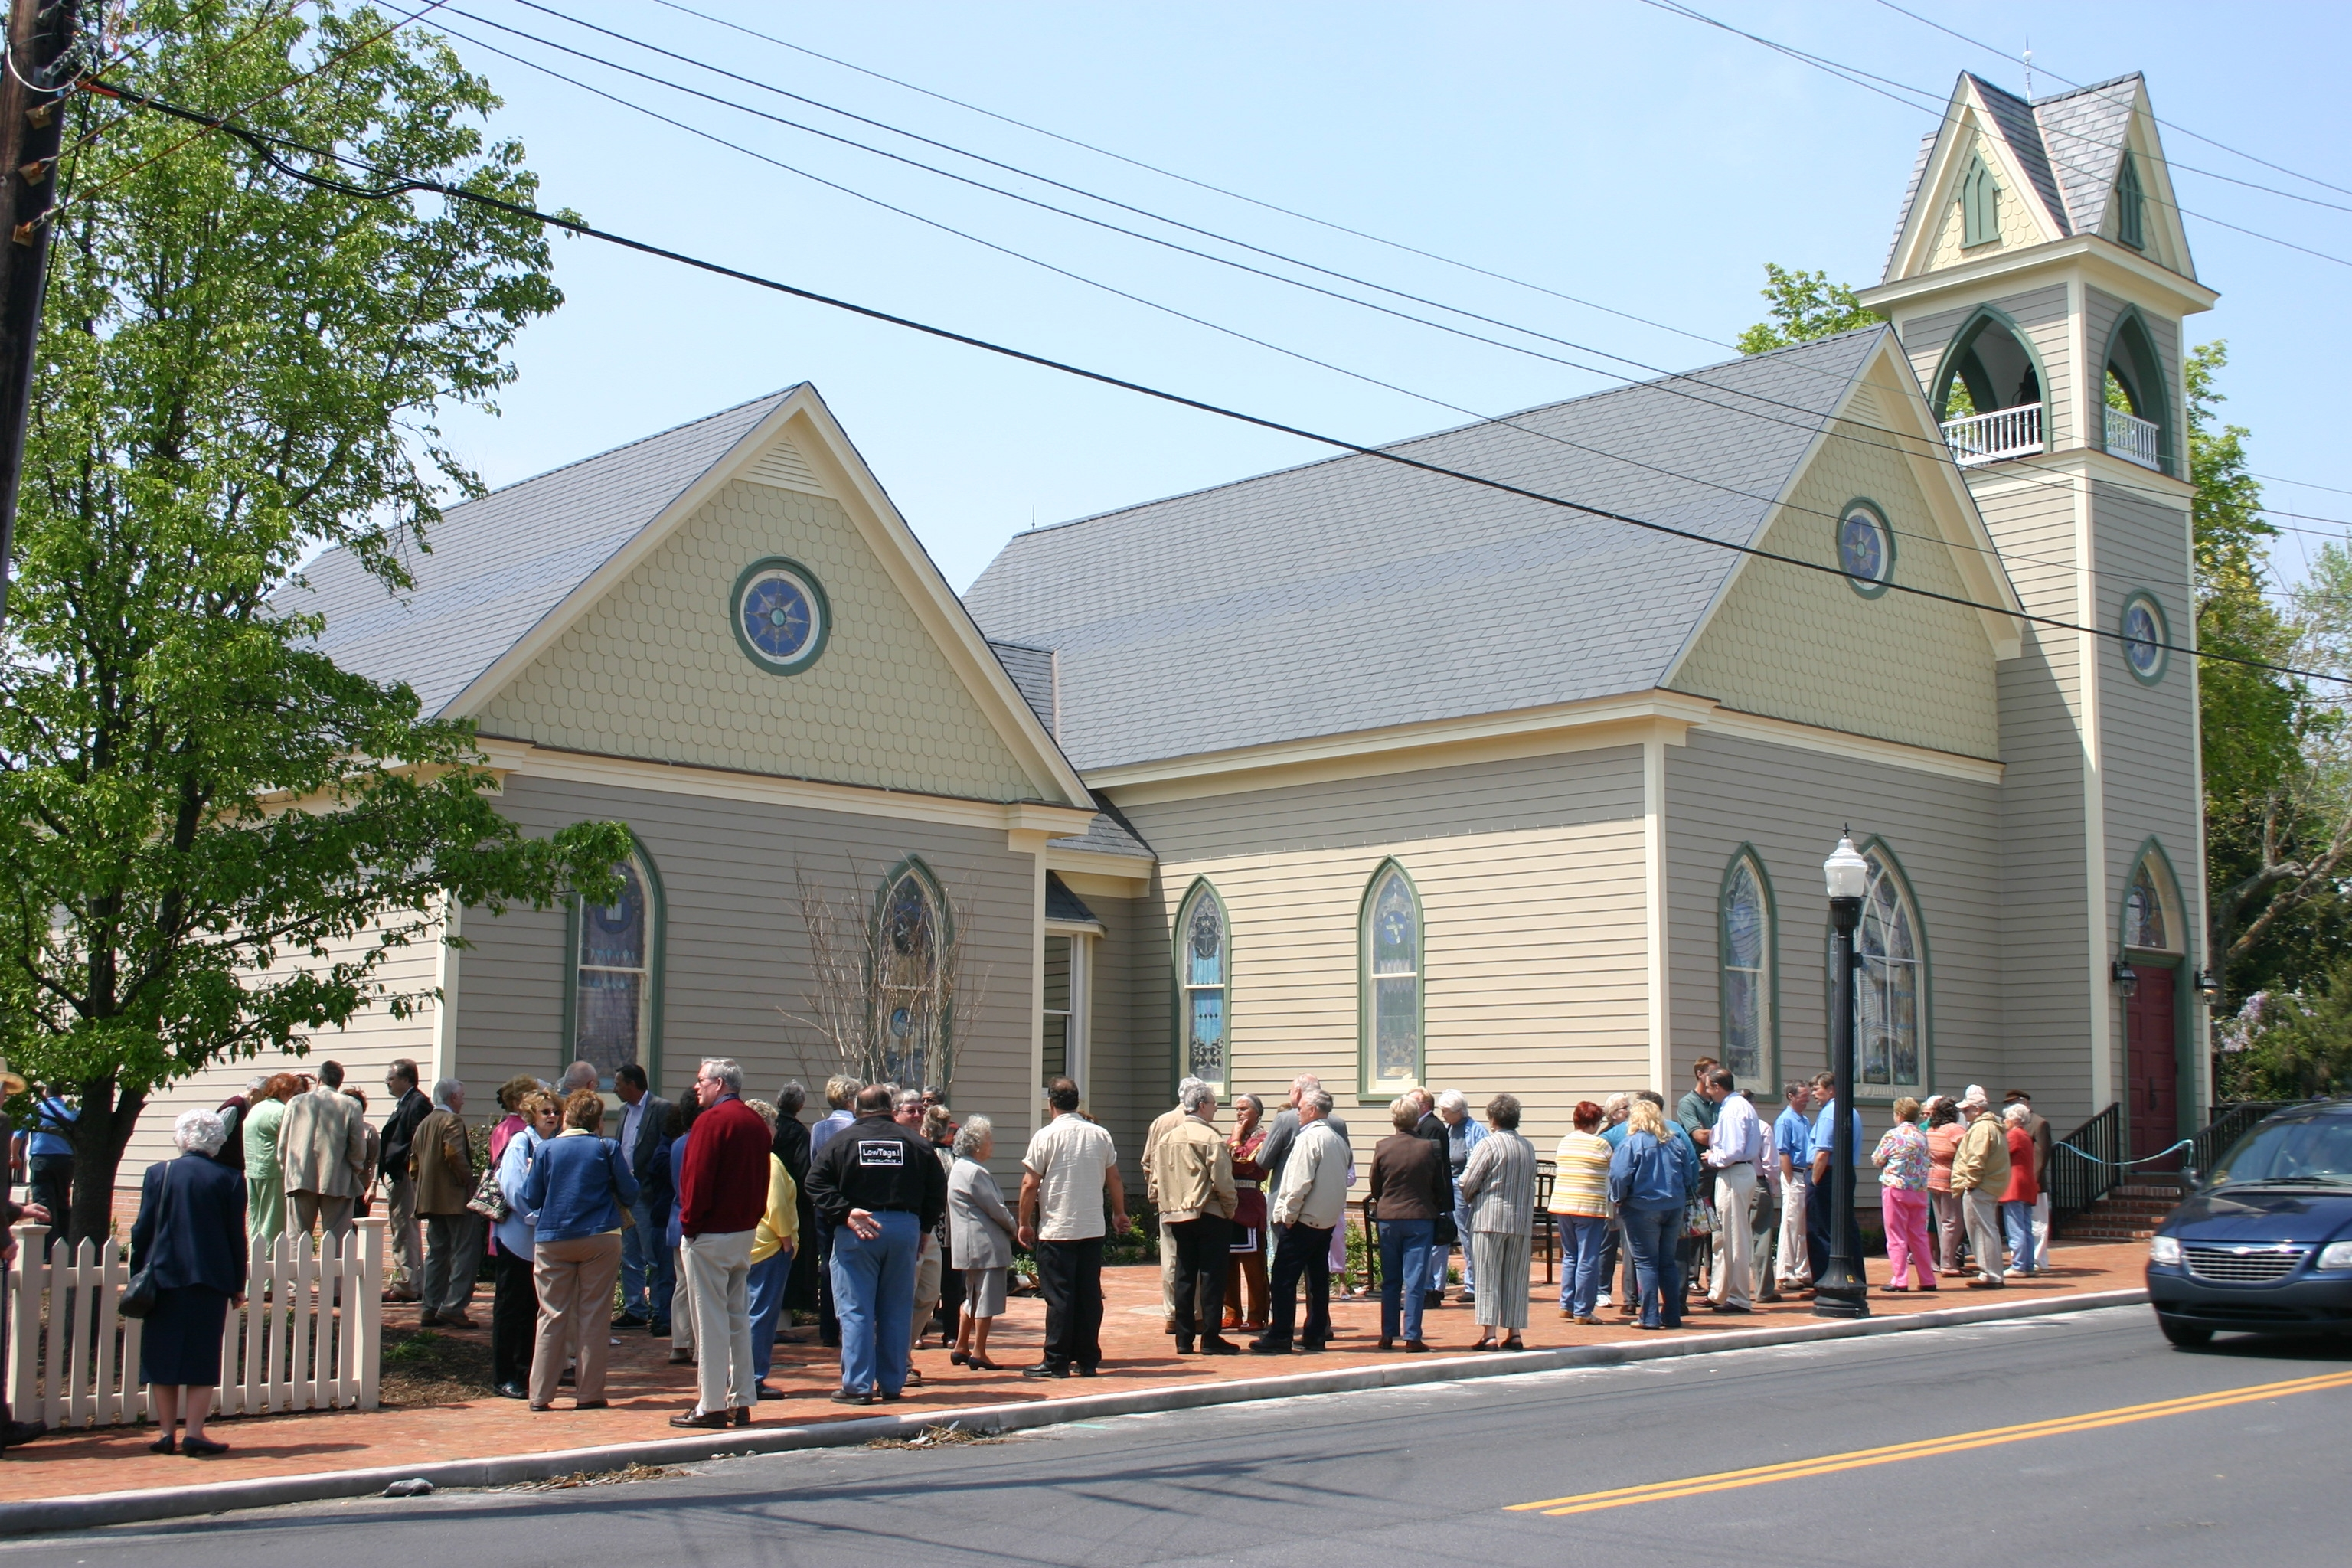 Opening day of the Milton Historical Society Museum, housed in a former Methodist Church originally built in 1857.